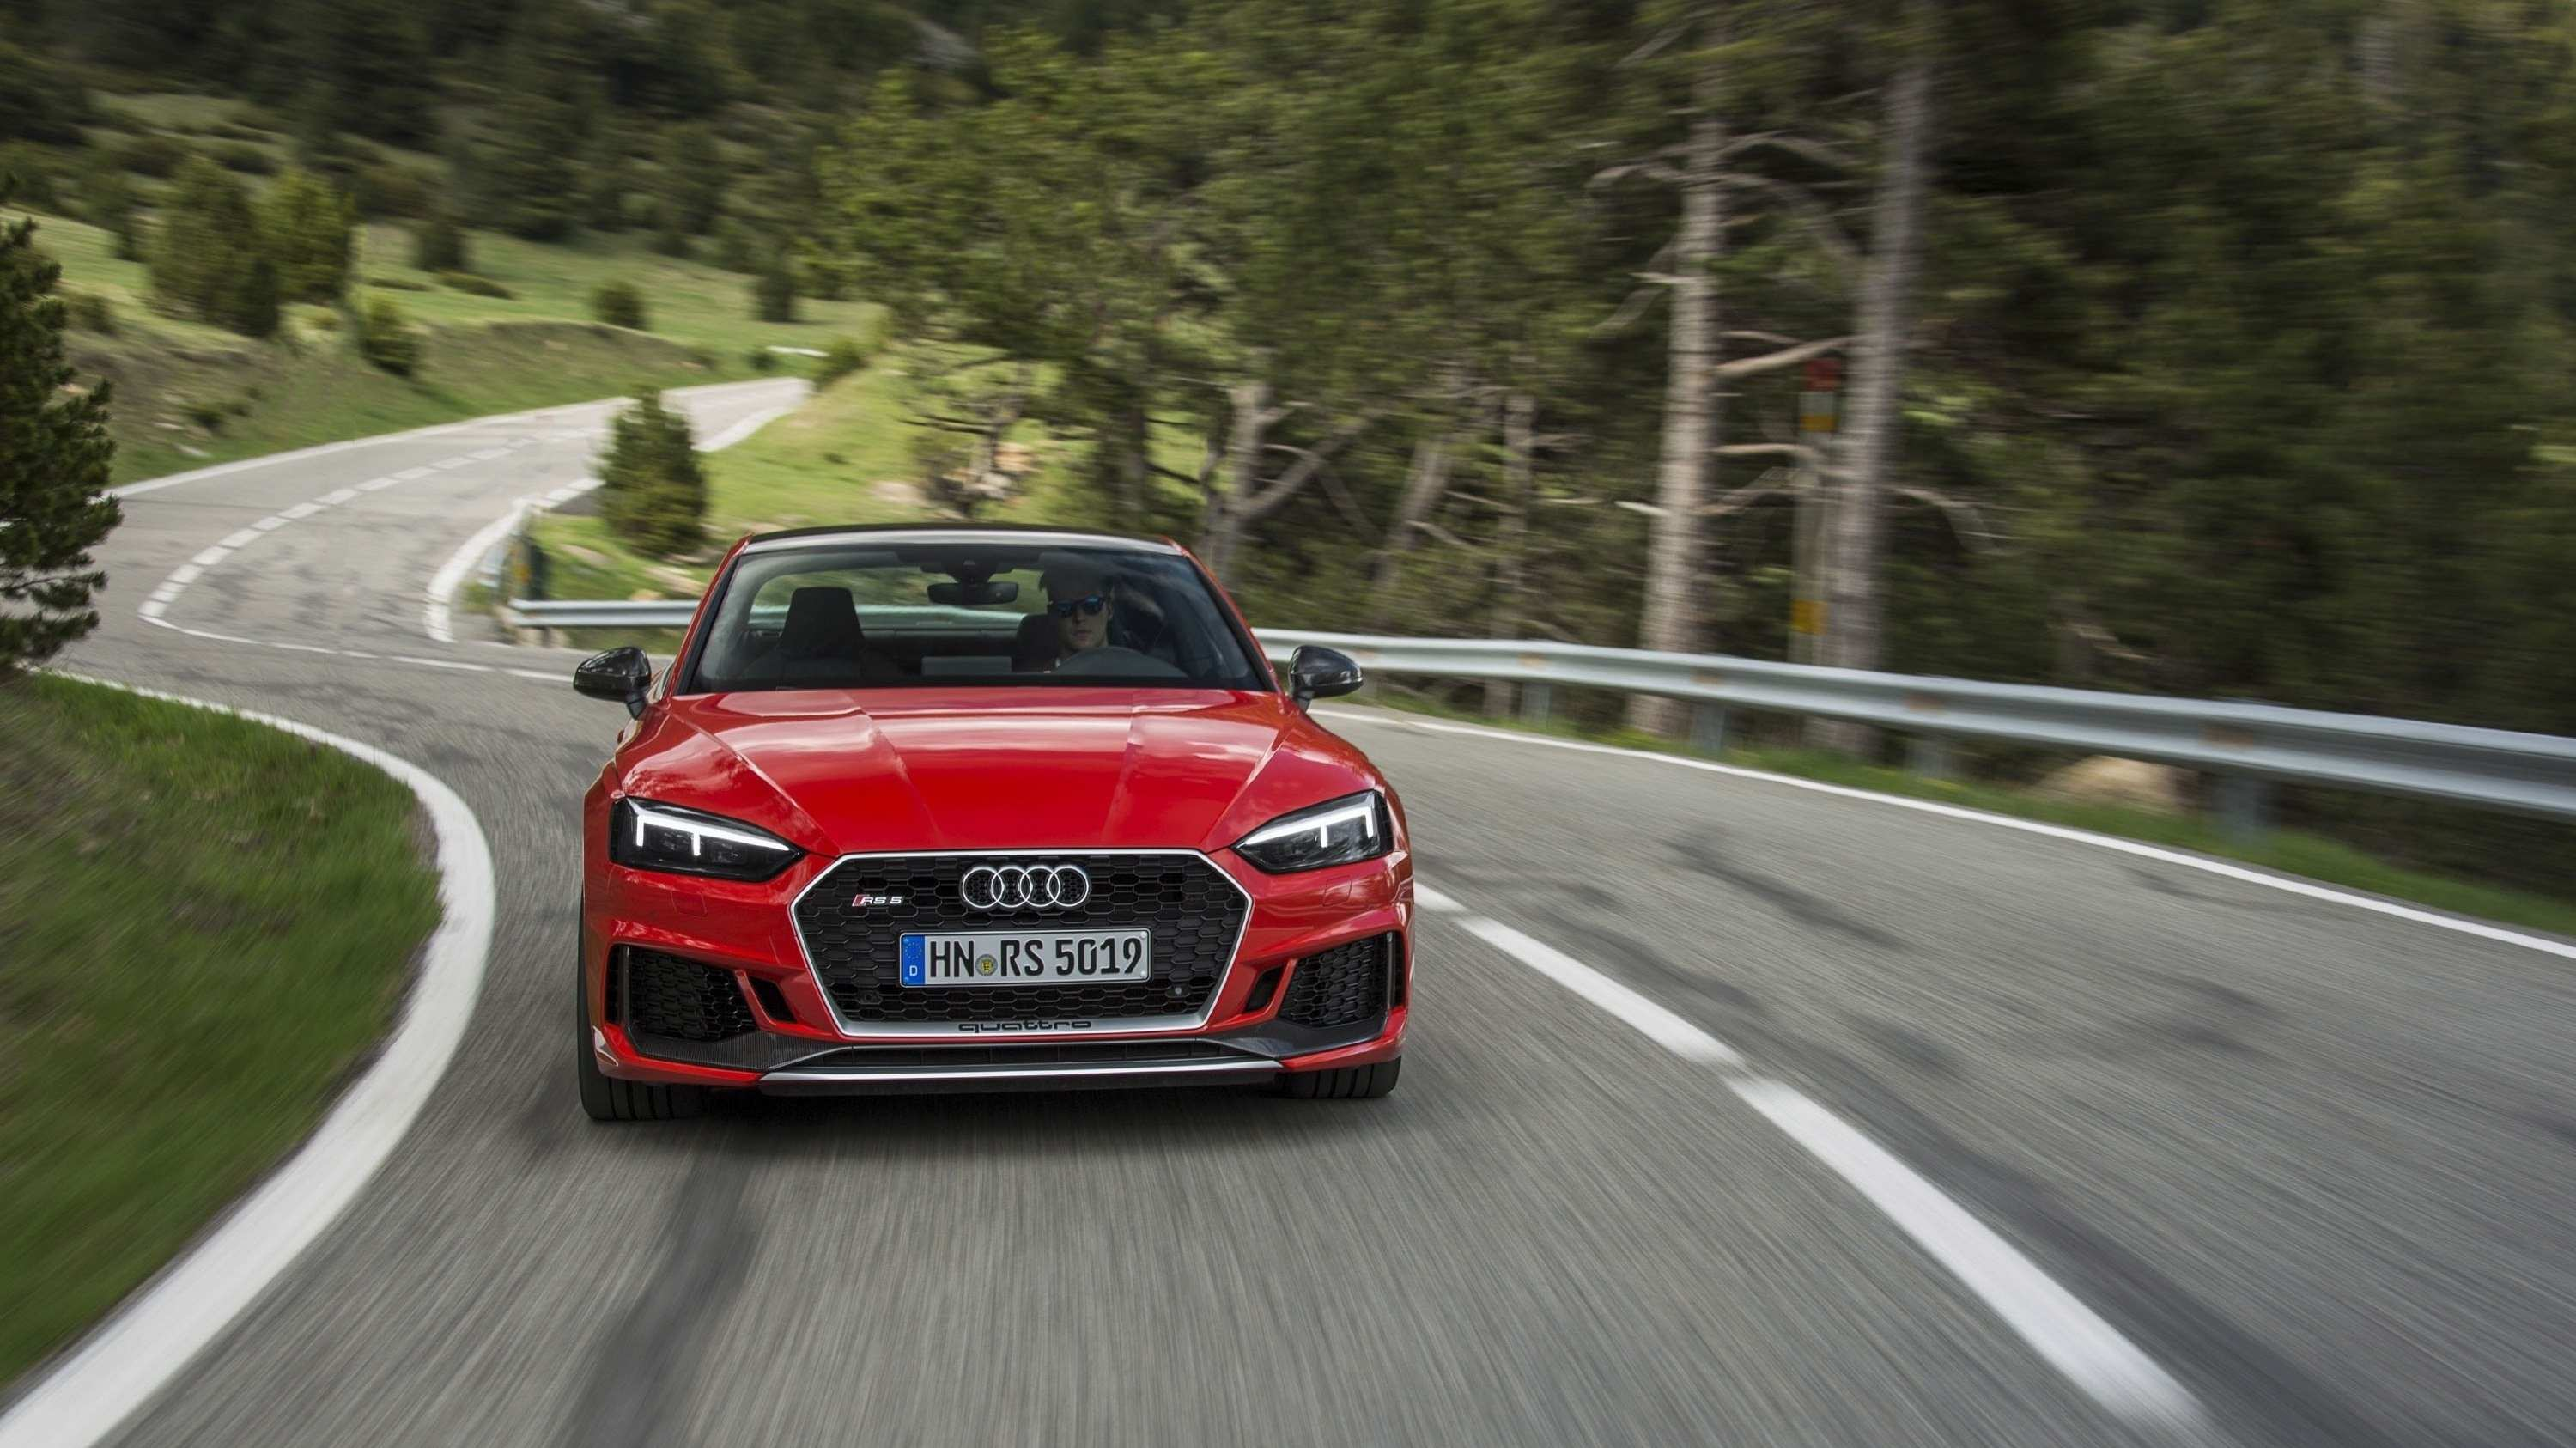 51 Concept of 2020 Audi Rs5 Tdi Performance with 2020 Audi Rs5 Tdi